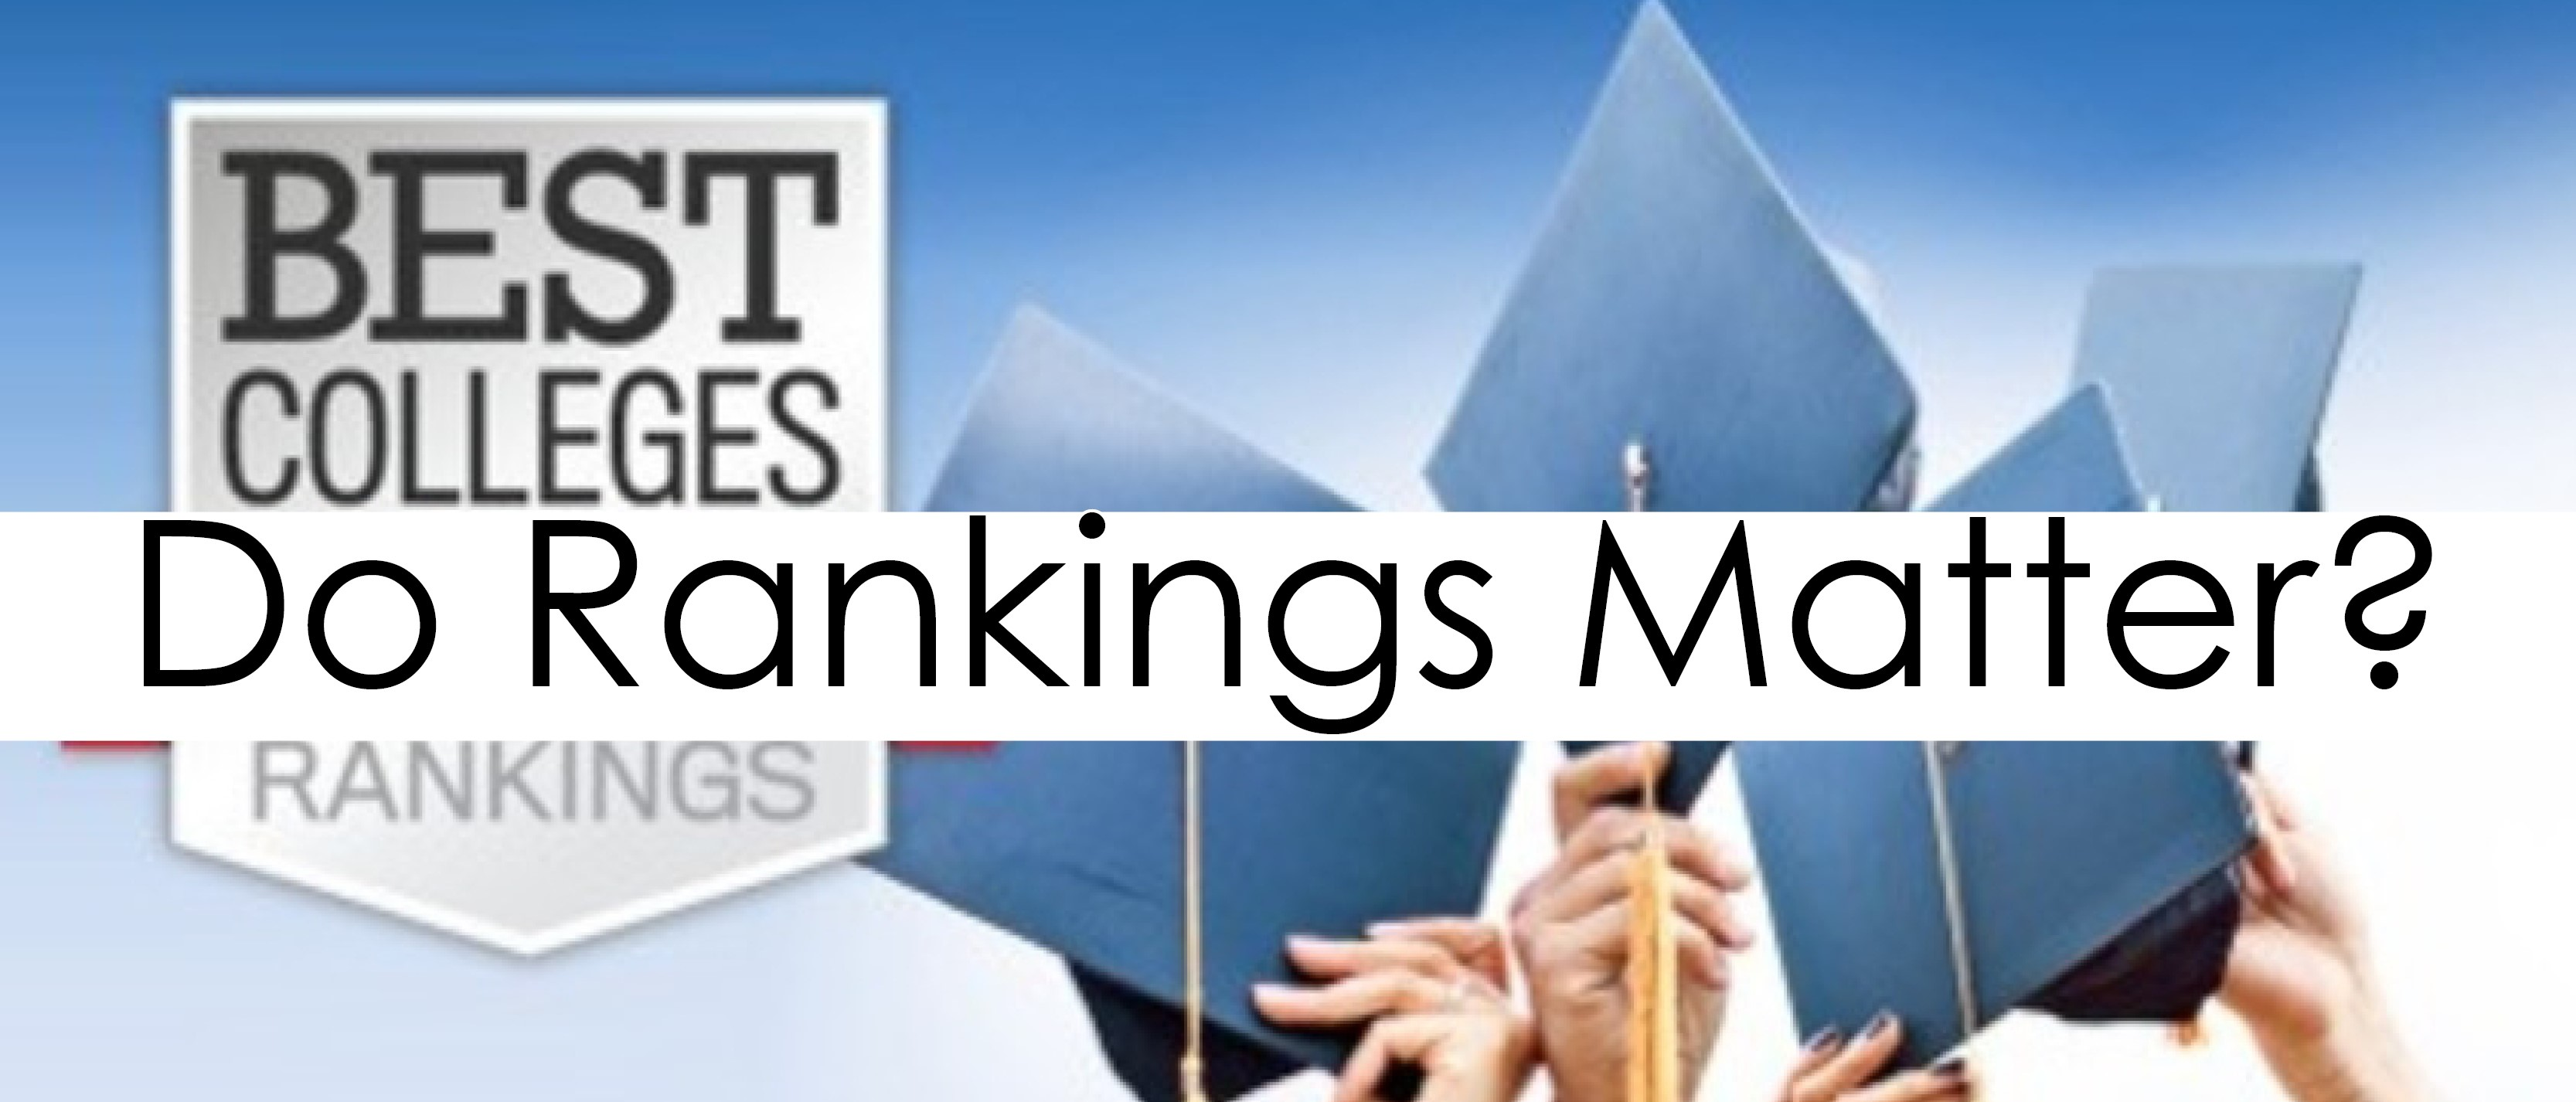 Do Rankings Really Matter?